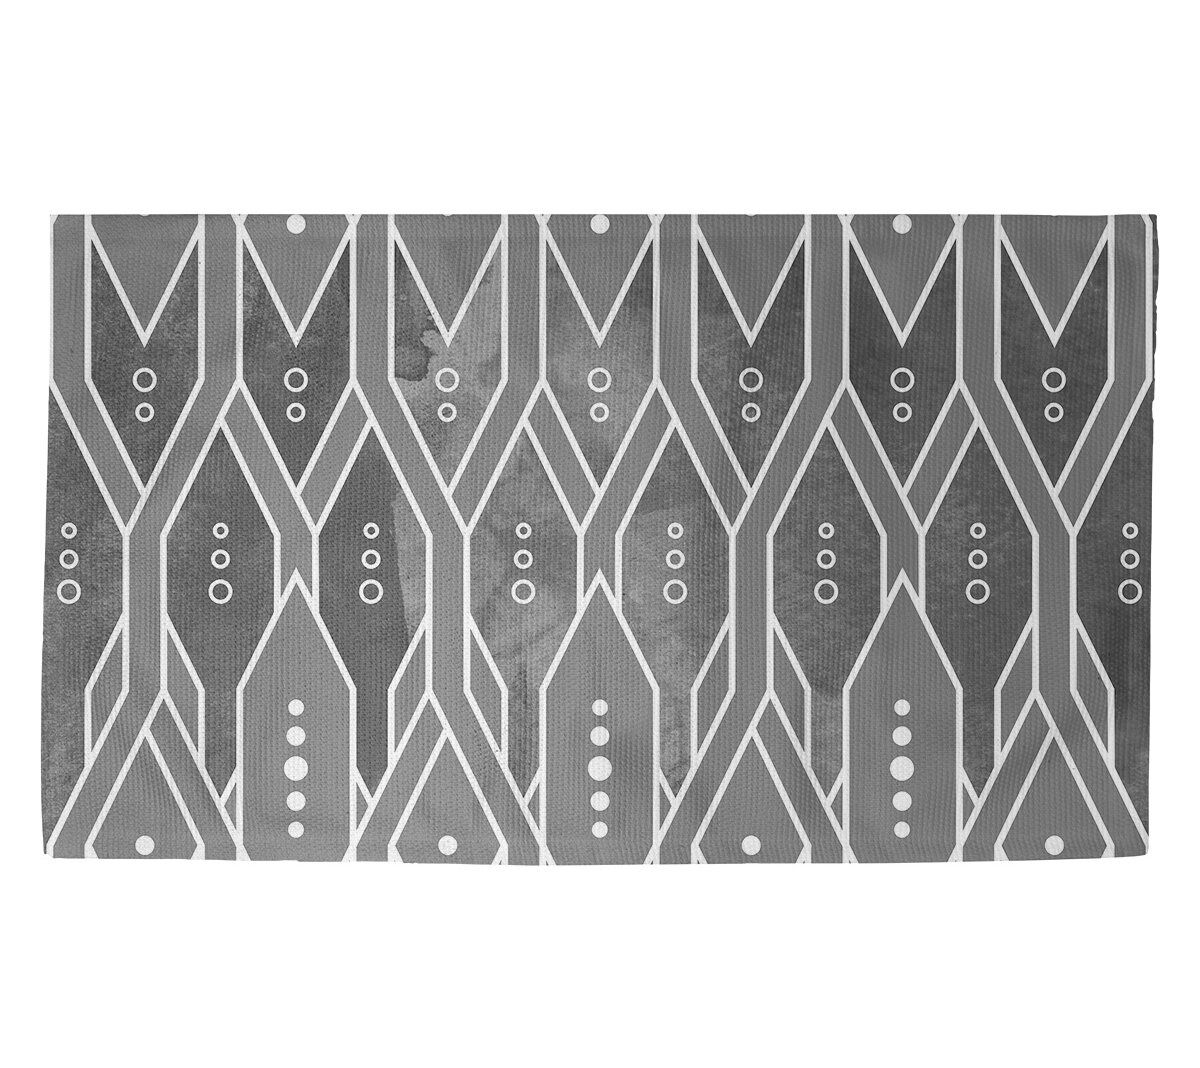 East Urban Home Mcguigan Trellis Pattern Black Area Rug Wayfair